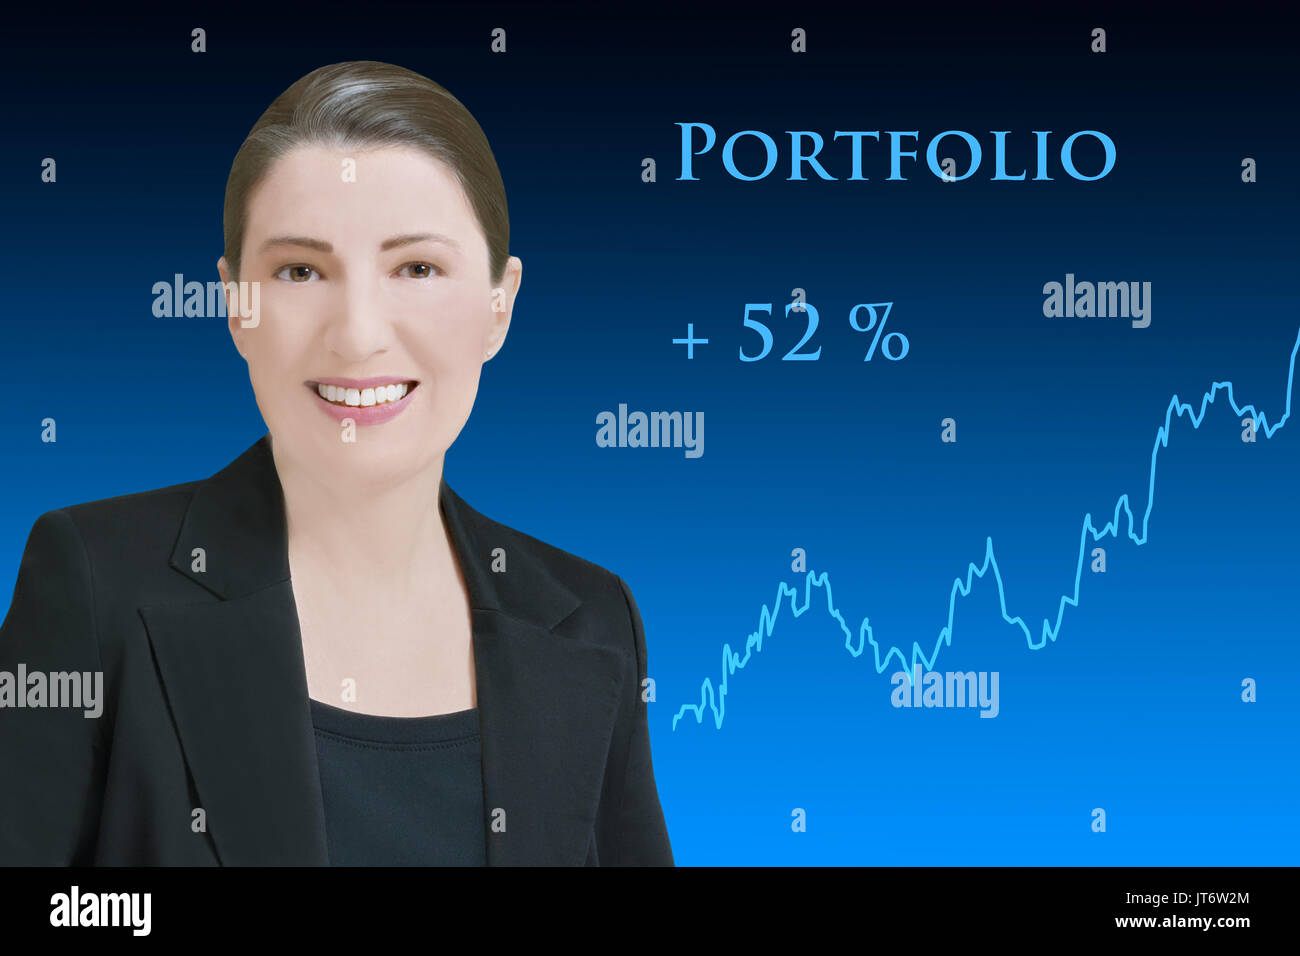 Female robo-advisor, friendly smiling artificial woman in front of blue backdrop with an upward rising chart, showing Stock Photo